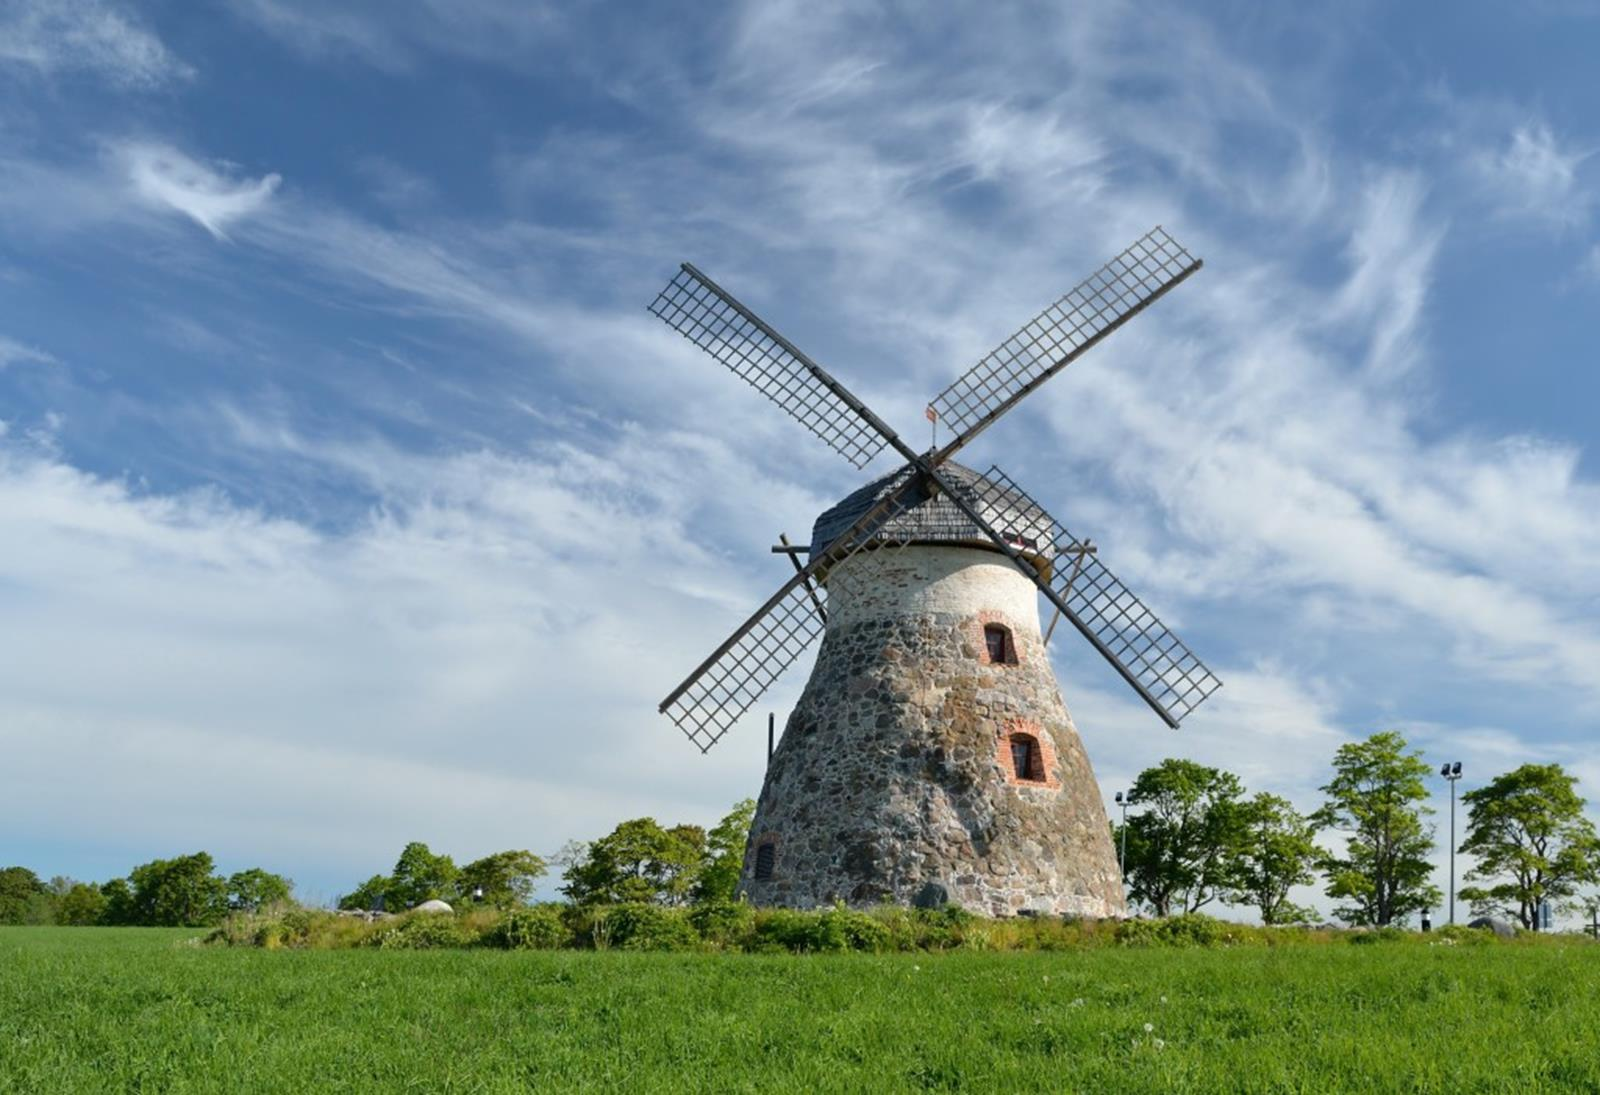 Iconic Windmill of the Netherlands